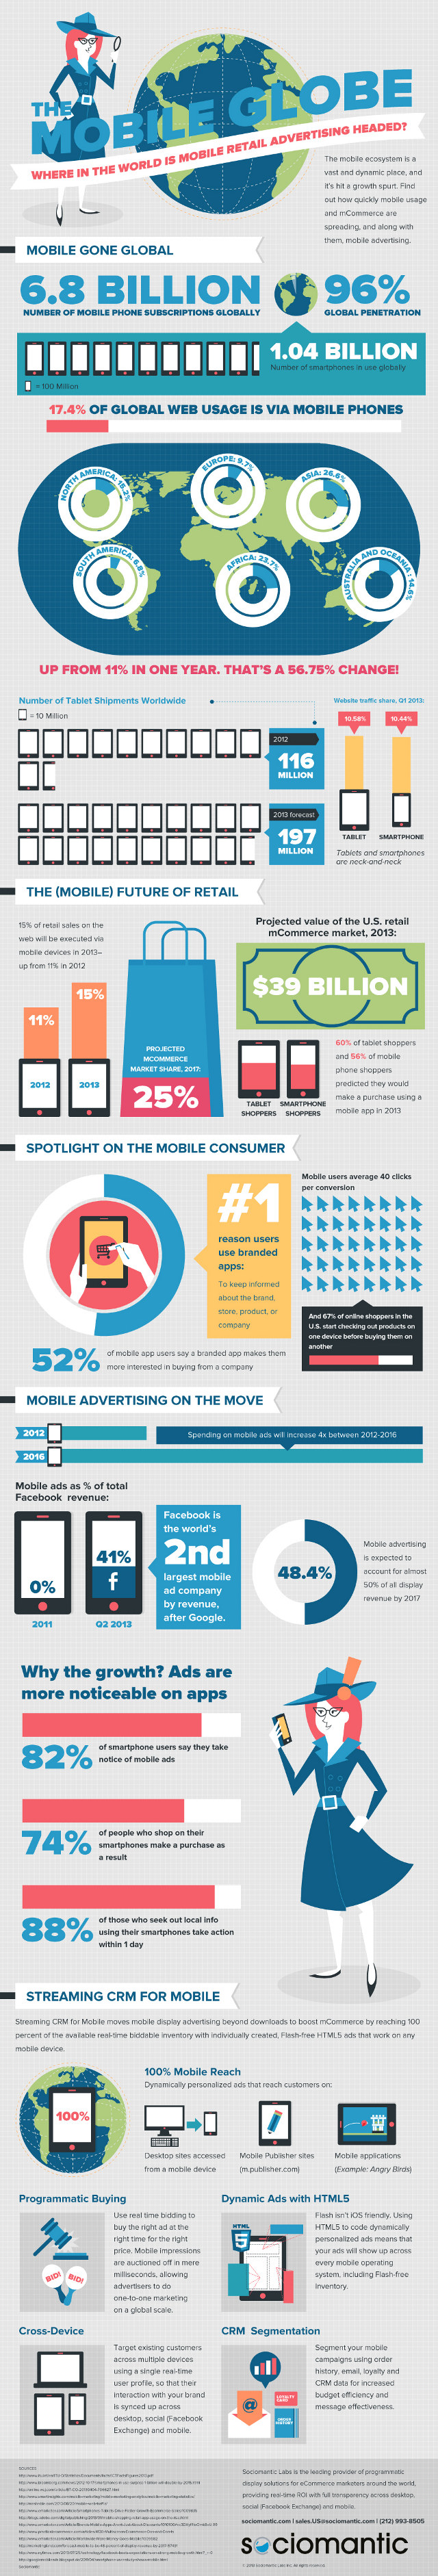 Sociomantic-Mobile-Globe-Infographic